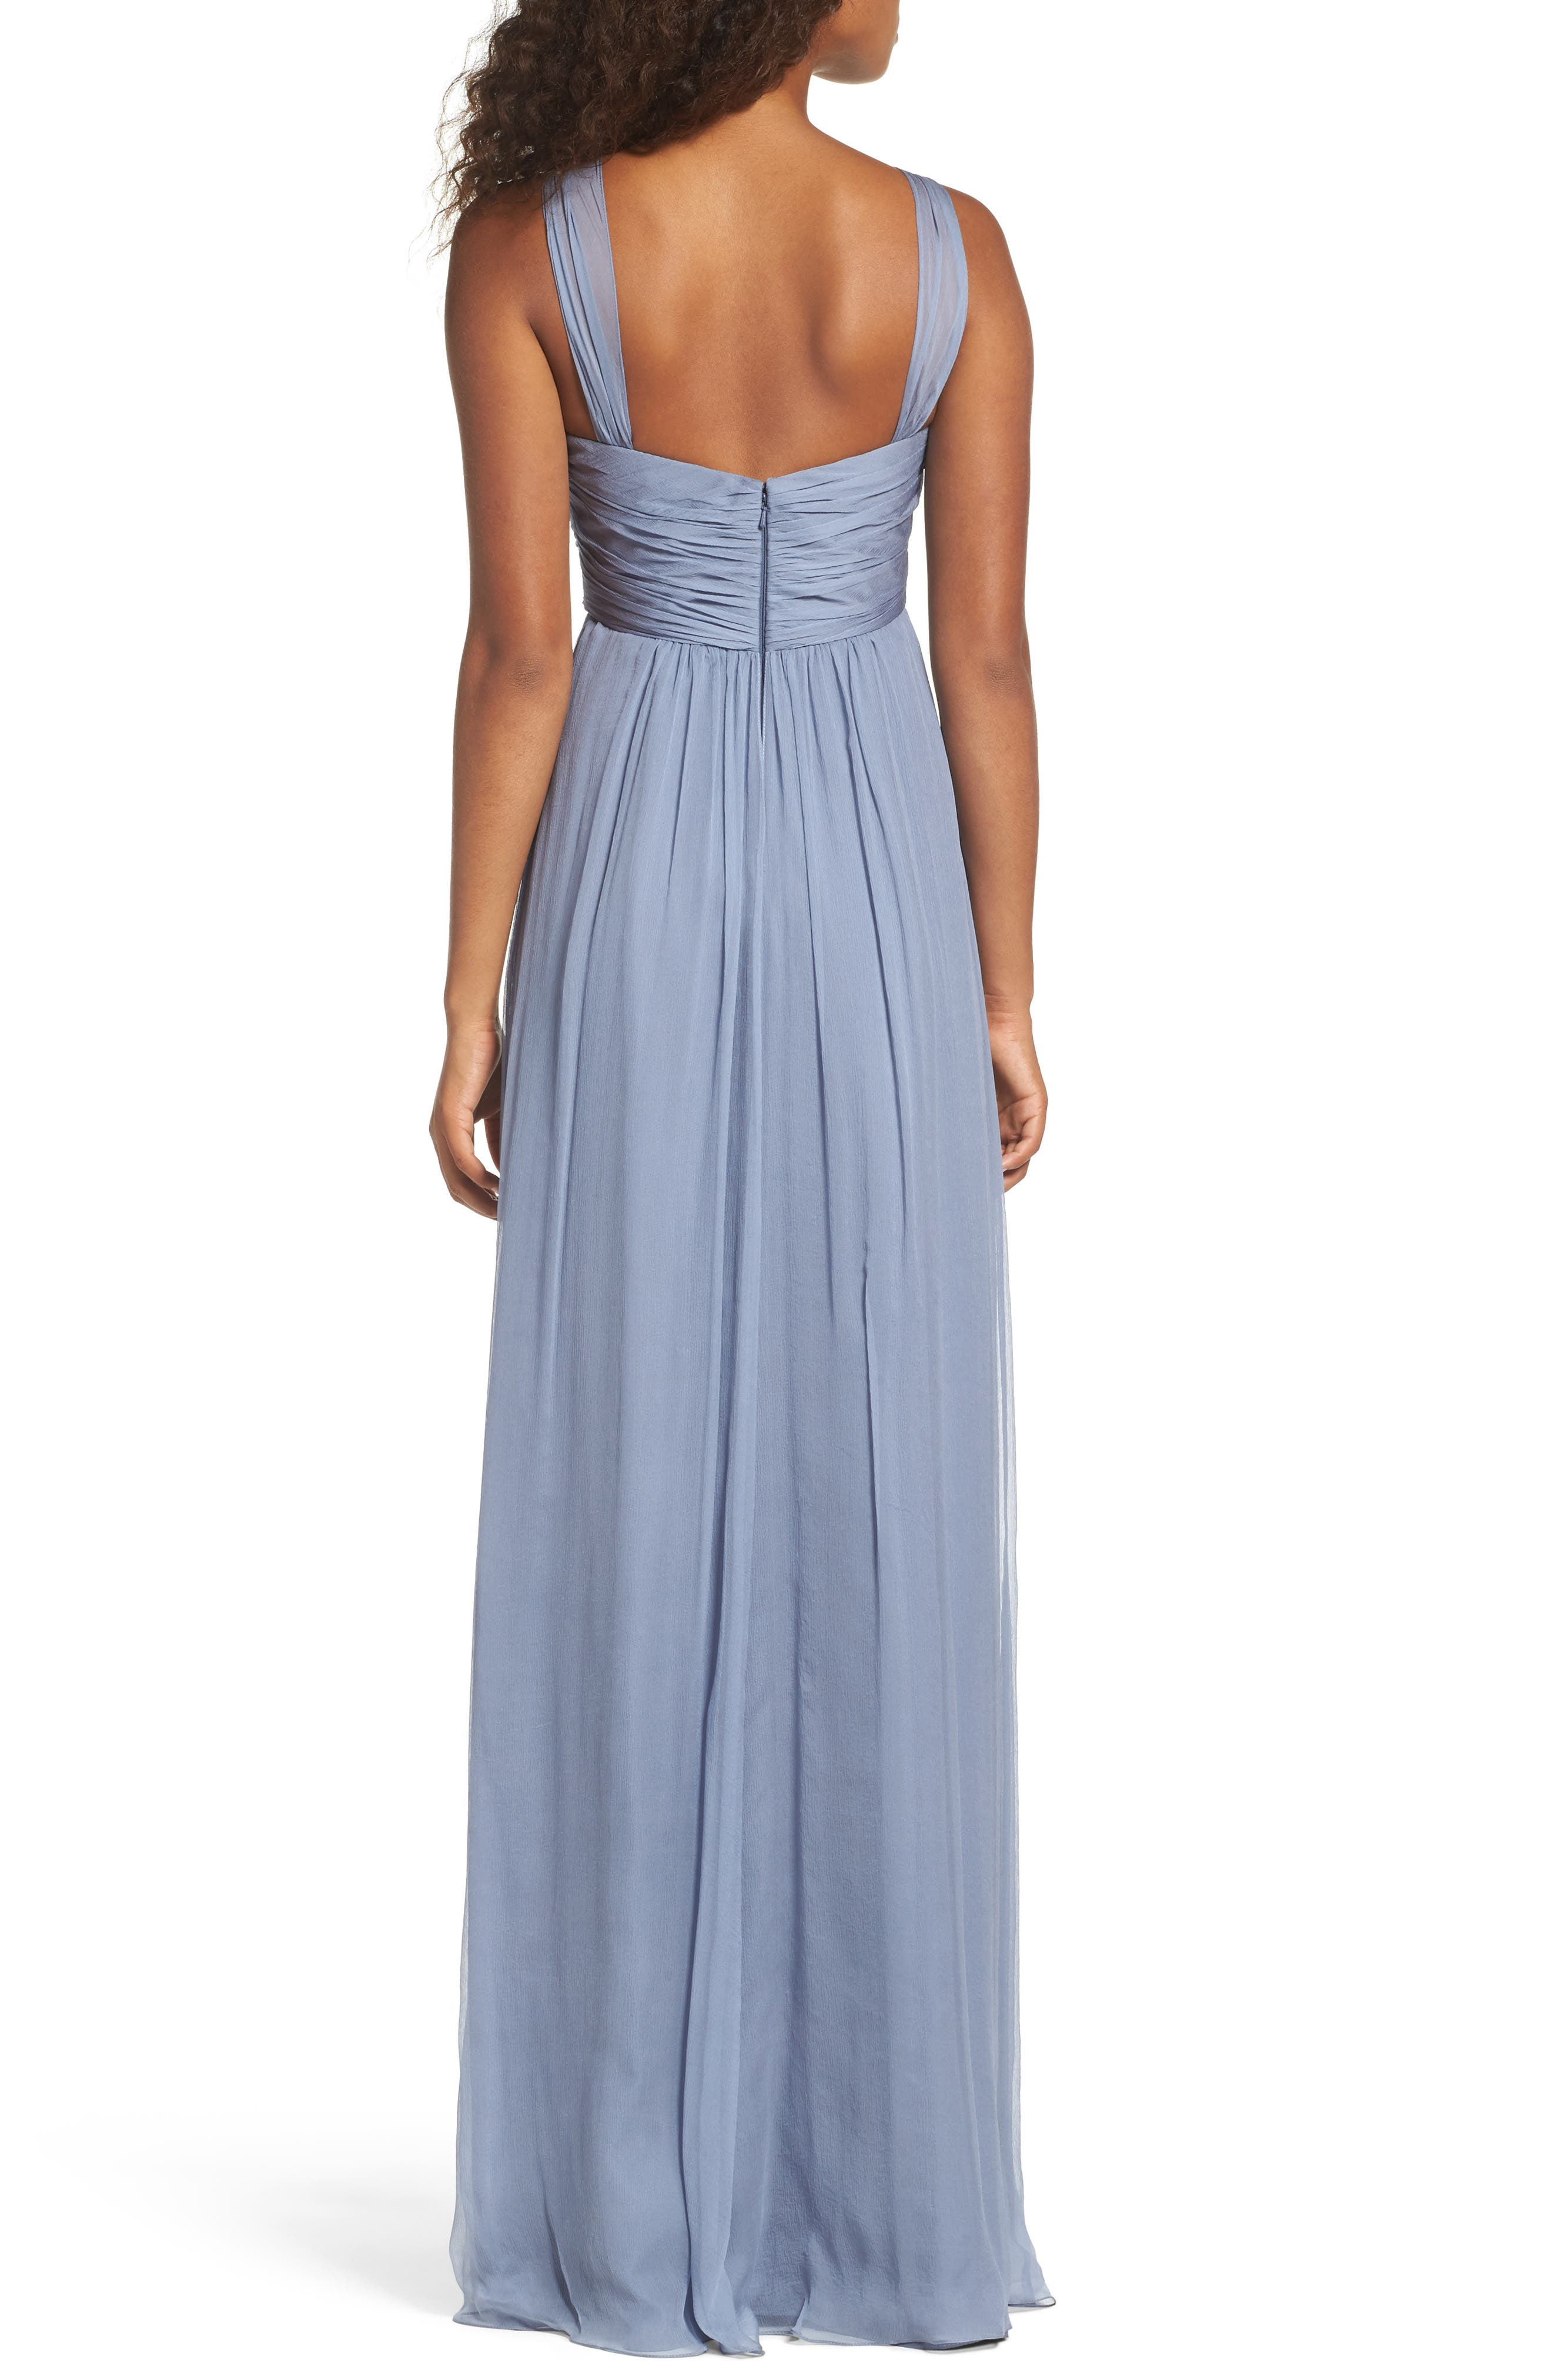 Corbin Crinkled Chiffon Empire Gown,                             Alternate thumbnail 2, color,                             020